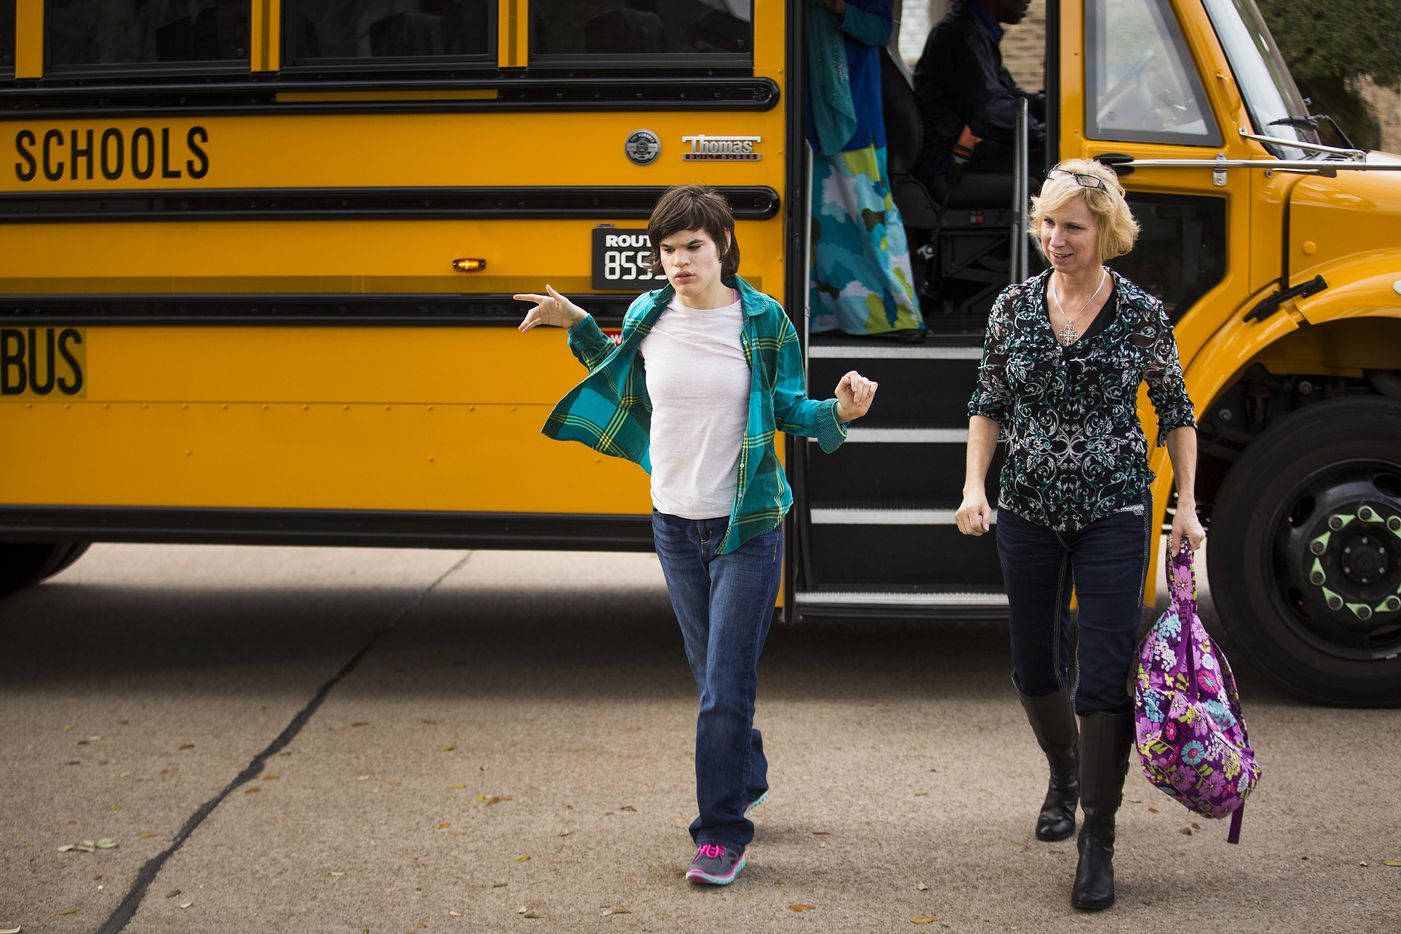 Christy Zartler helps her daughter Kara Zartler off of the school bus in front of her family's home on Thursday, March 9, 2017, in Richardson. The 17-year old has severe autism and cerebral palsy. (Smiley N. Pool/The Dallas Morning News)